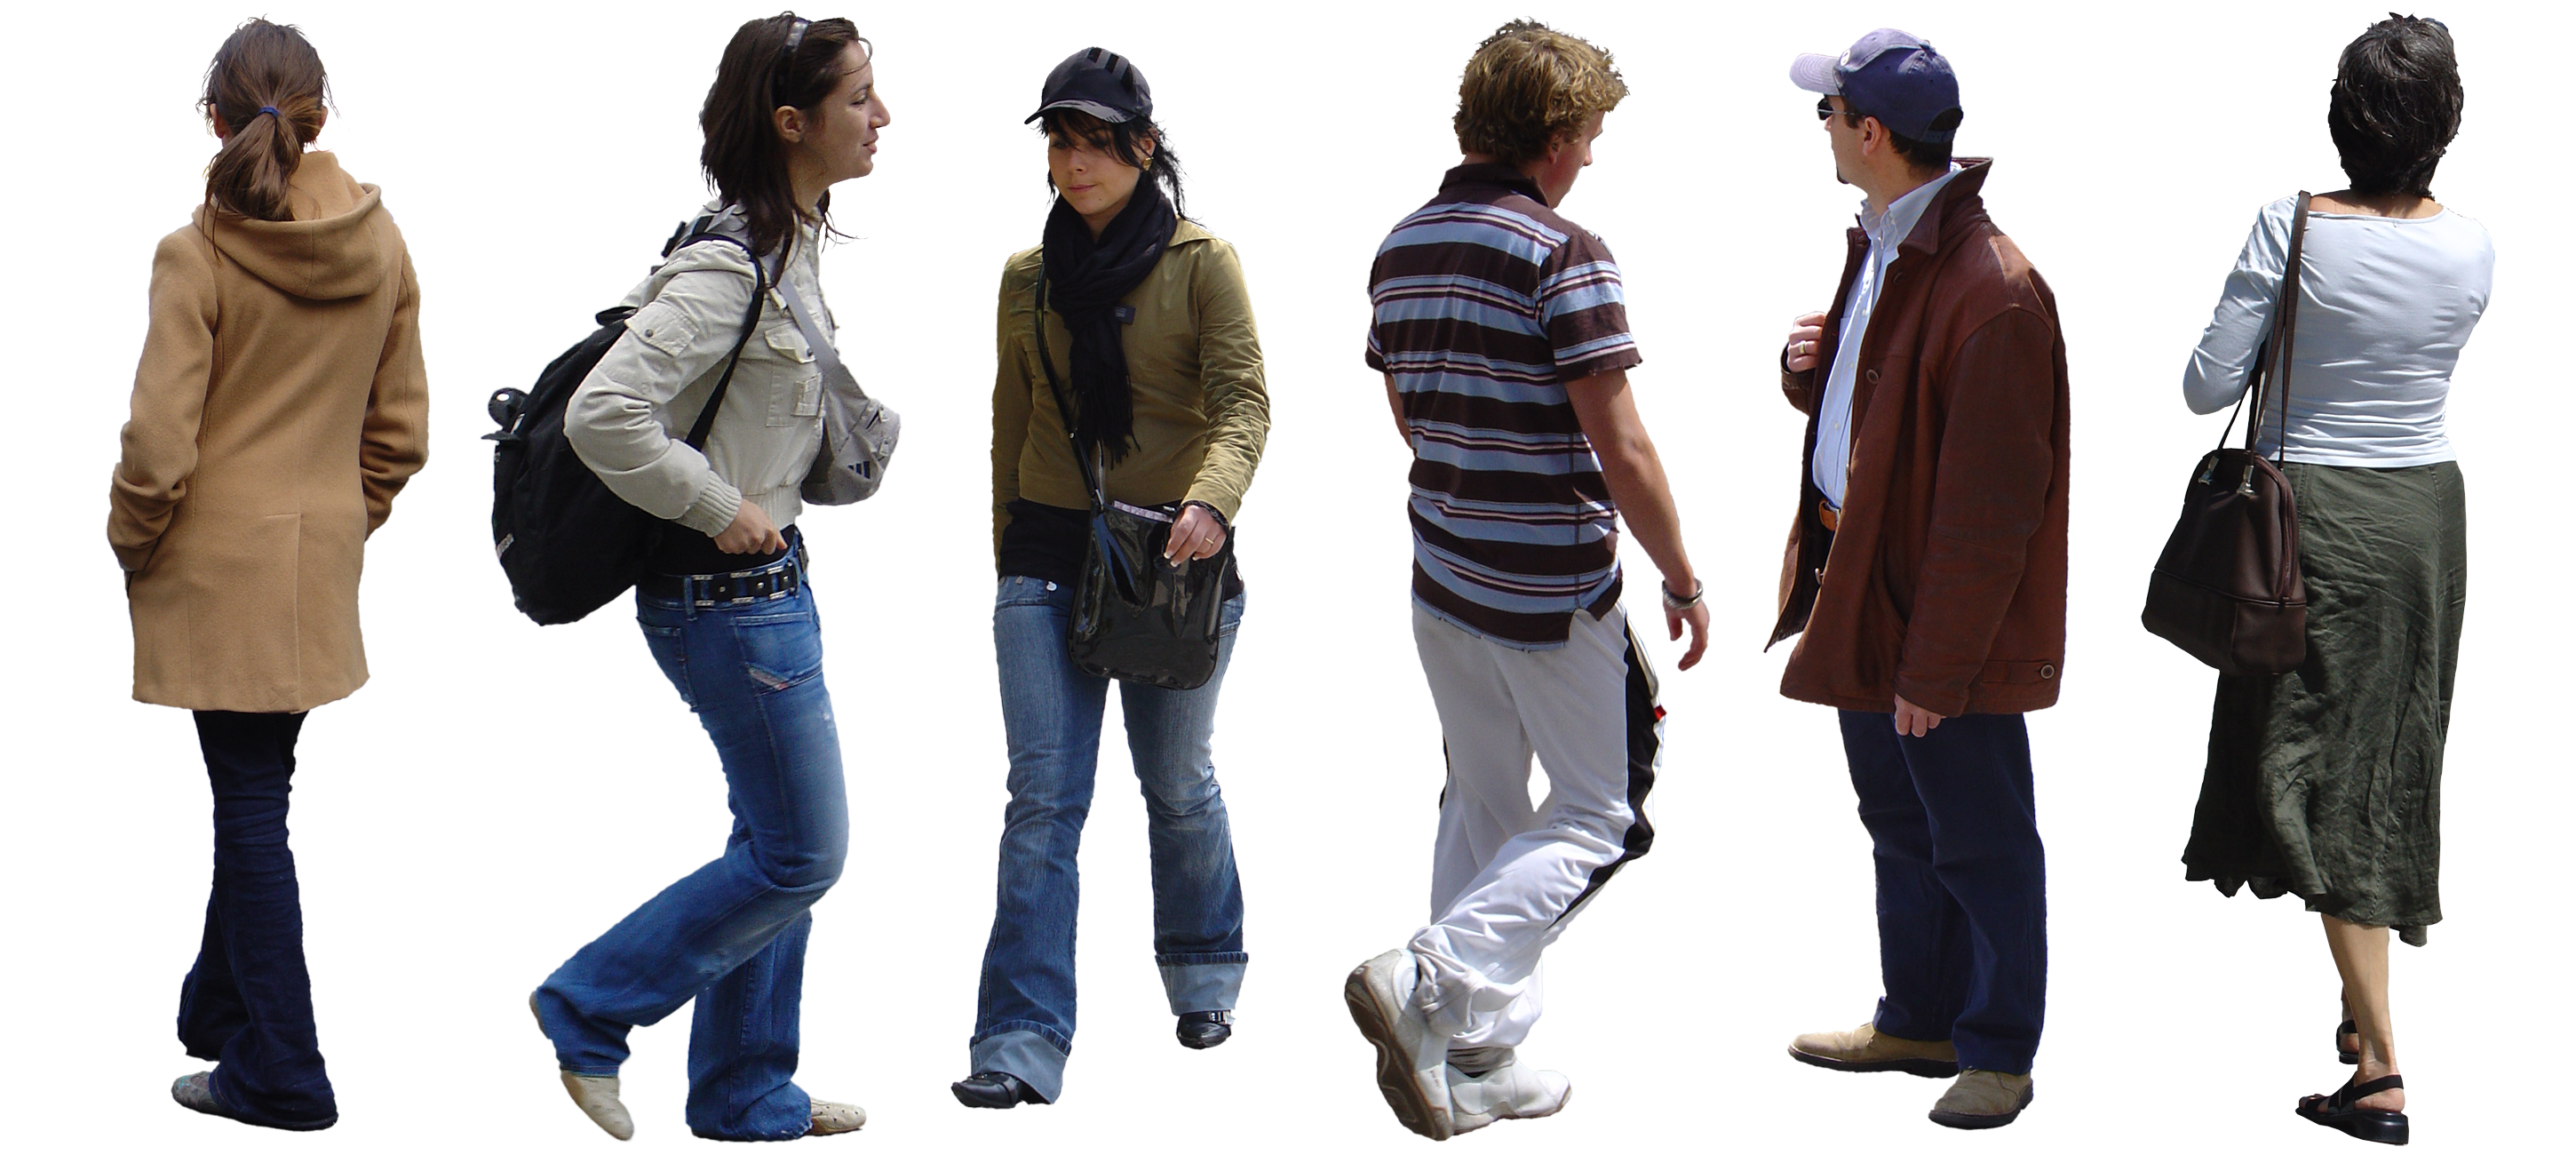 Scale figures png. Compositing people textures in